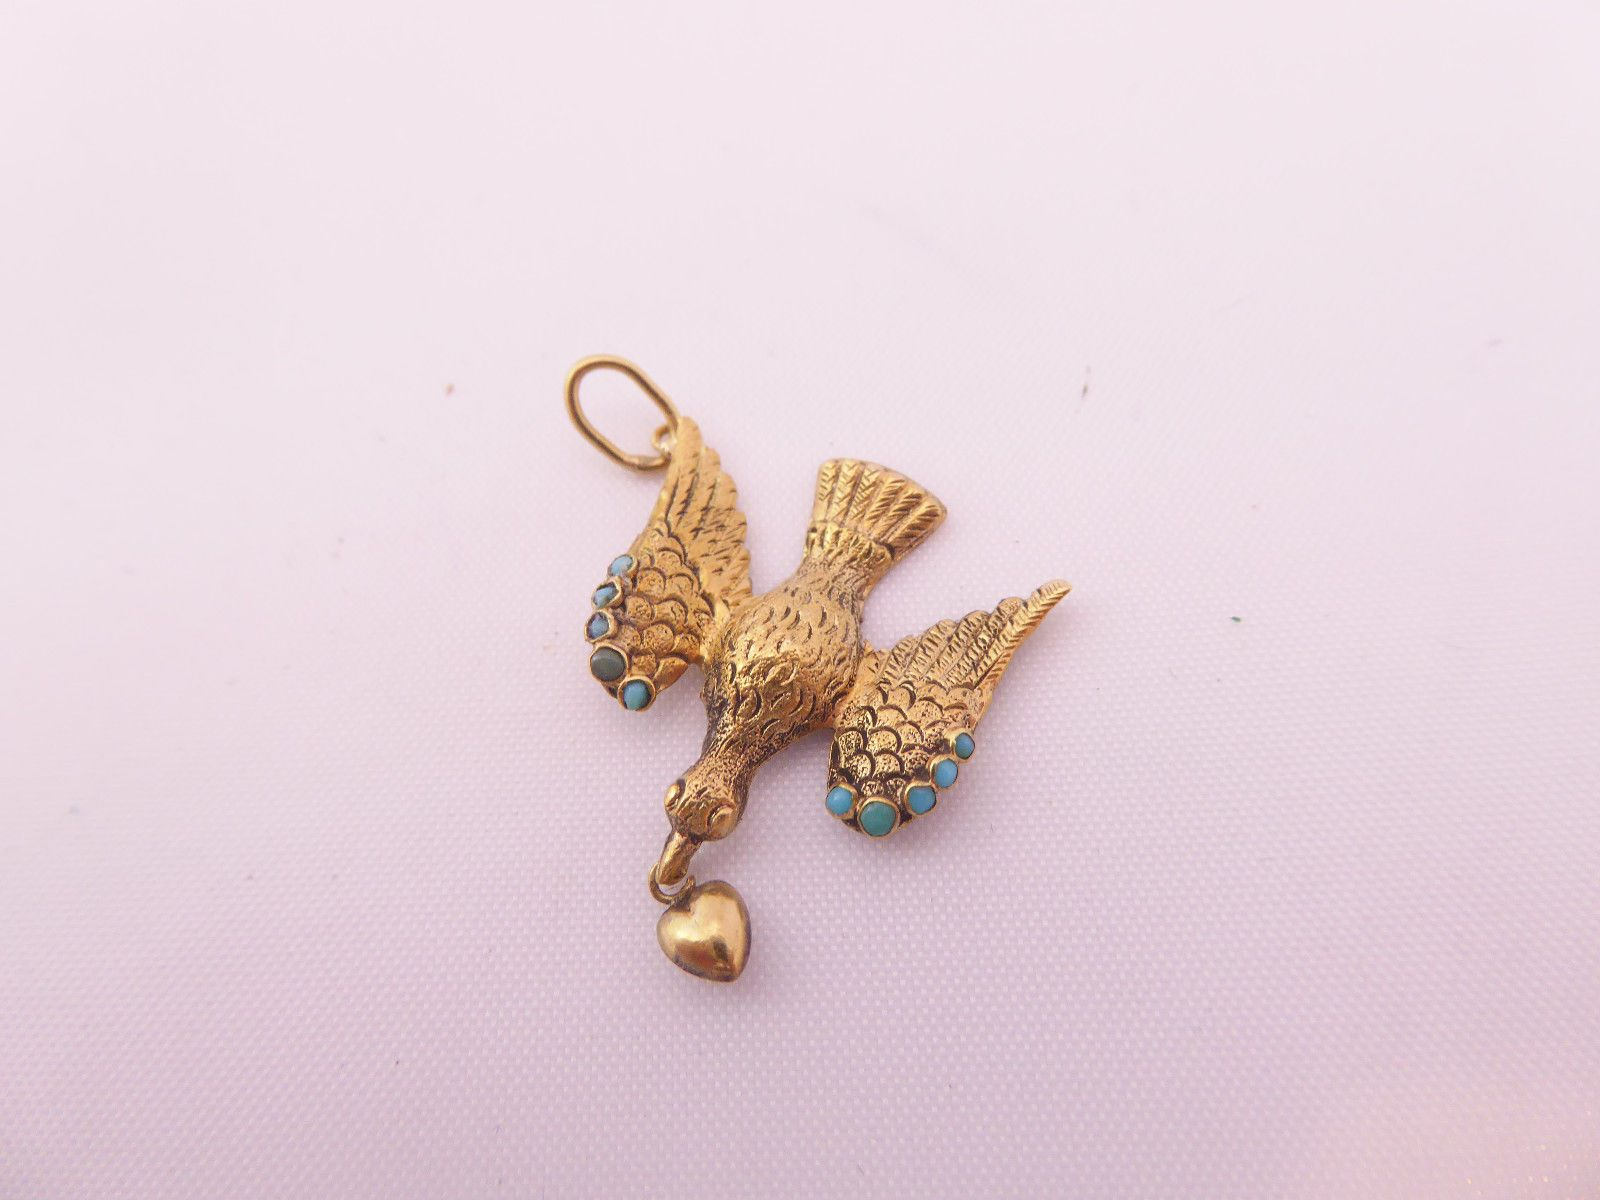 Ct k gold turquoise georgian th century bird pendant